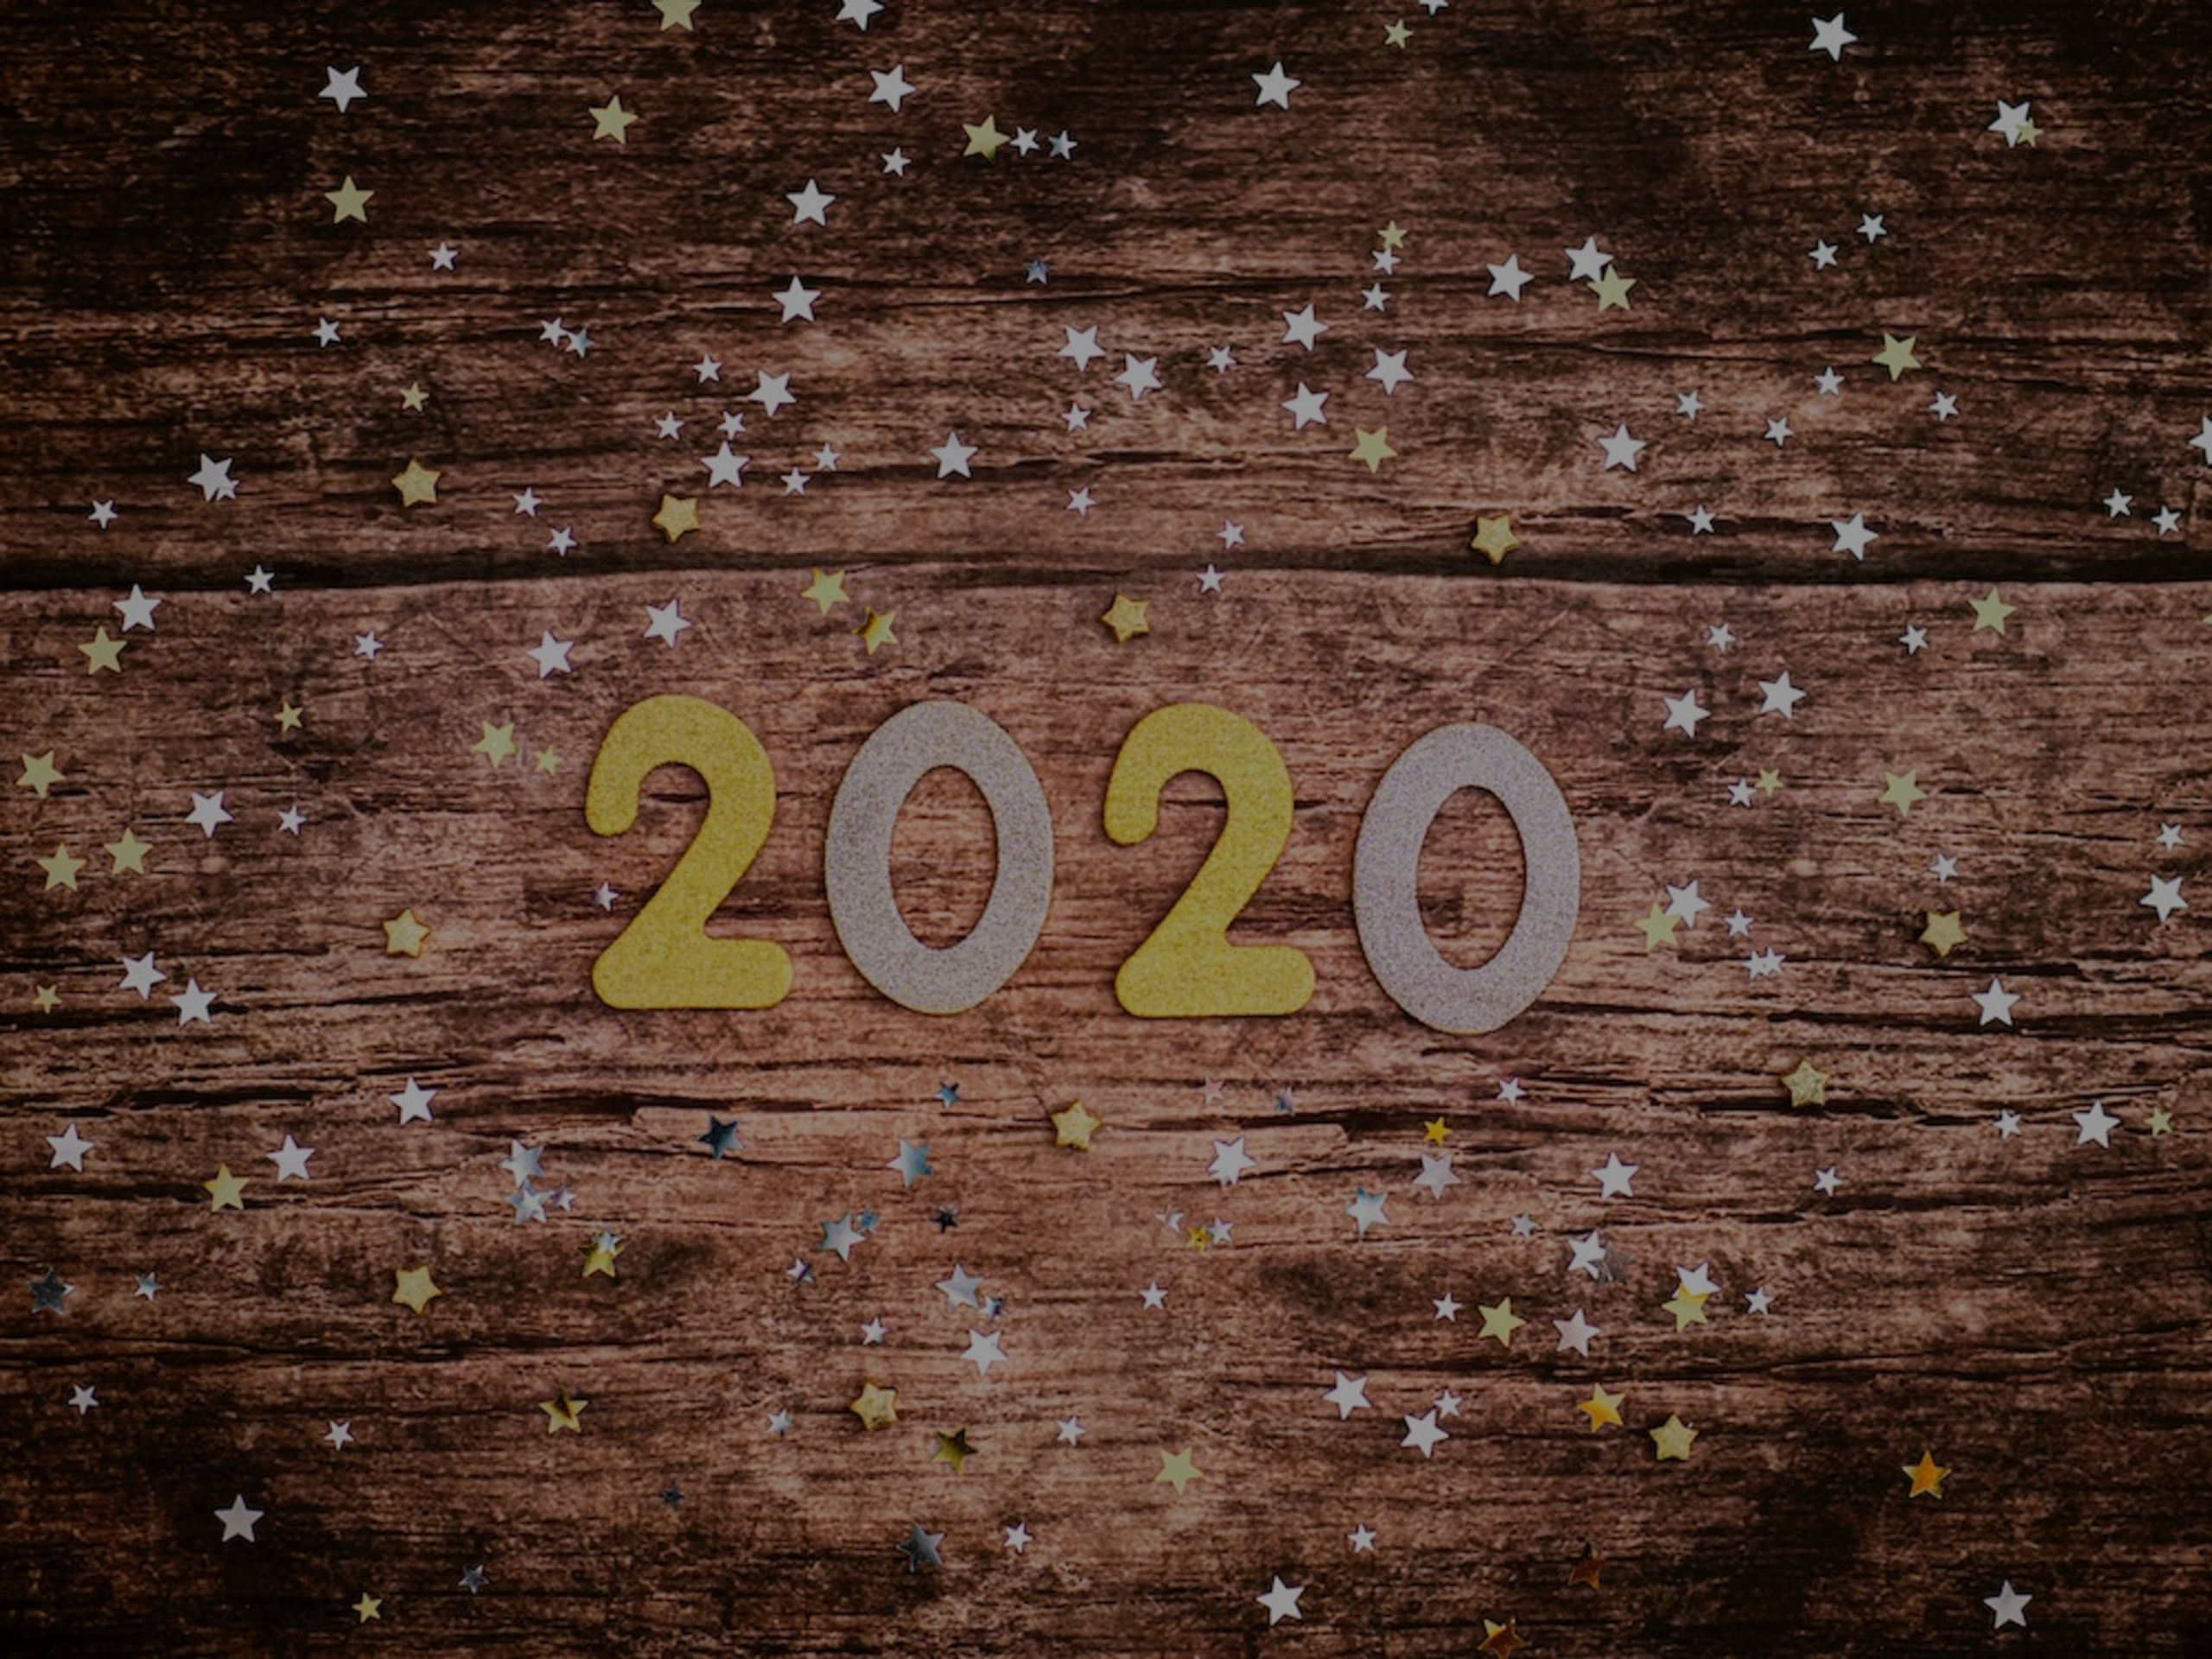 2020 Trend Alert: Food, Movies, Home Decorating